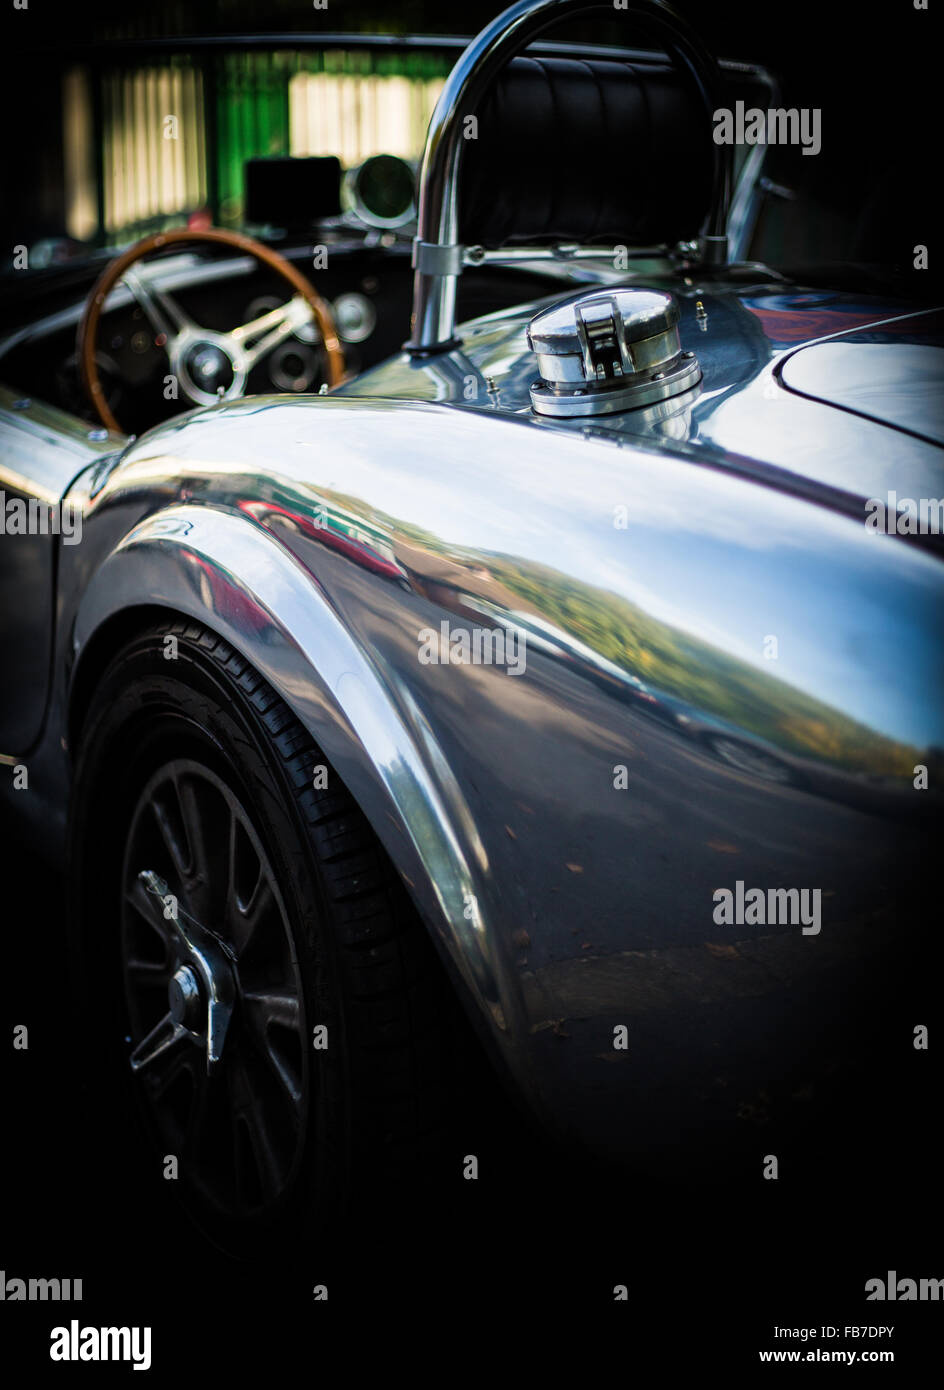 aluminum body convertible AC Cobra rear drivers side view showing fuel cap and steering wheel - Stock Image